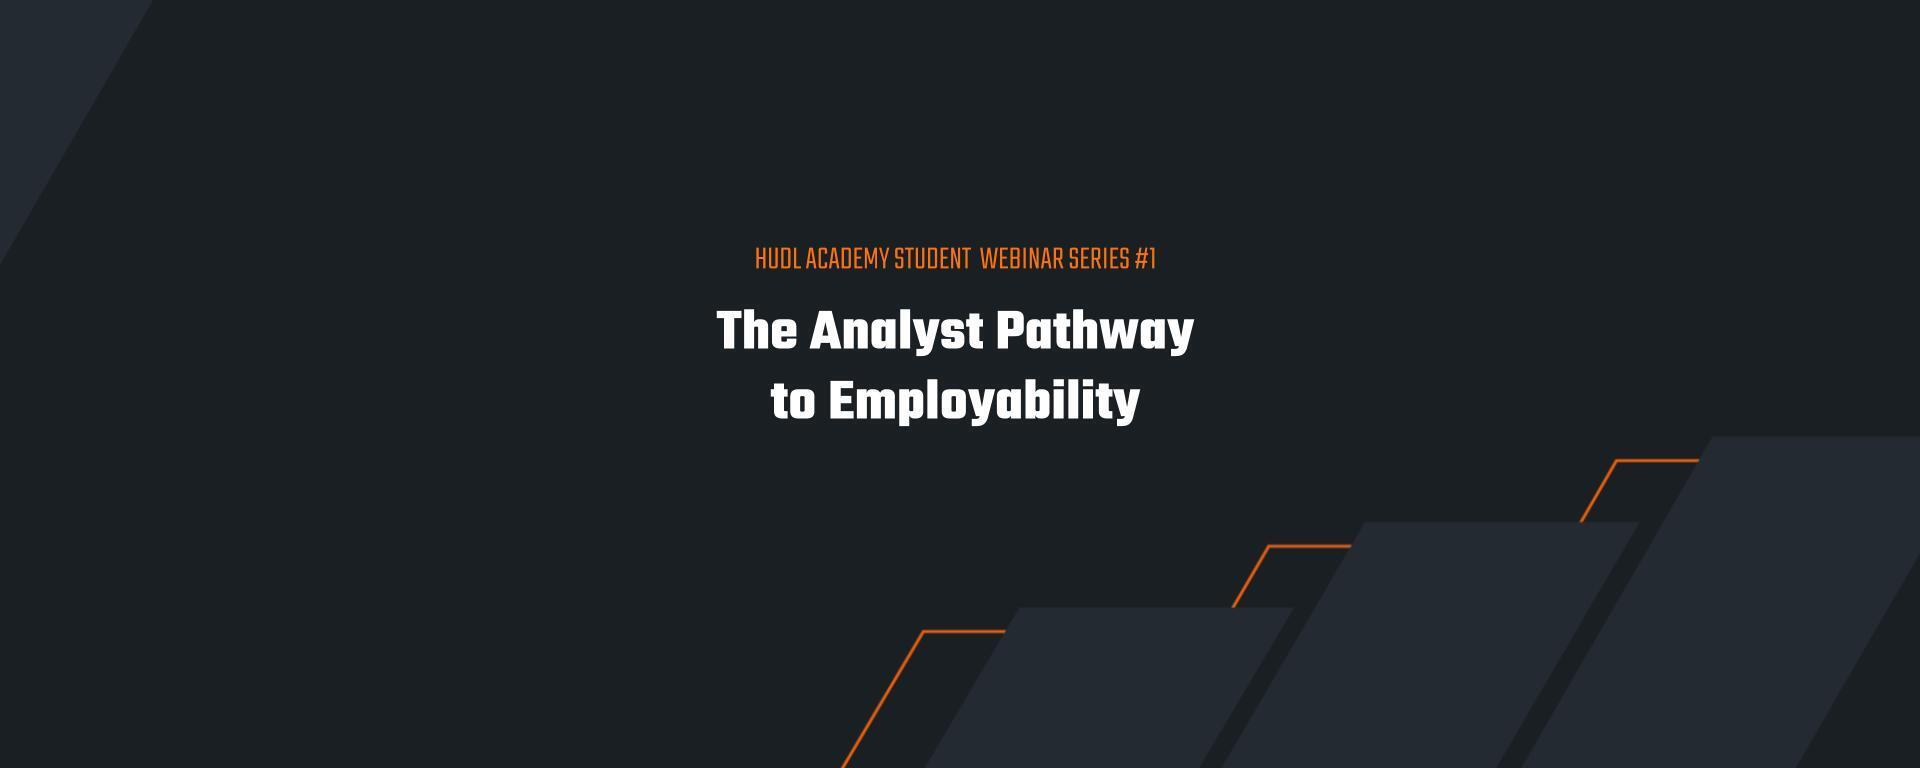 Hudl Academy Student Series: Part 1 - The Analyst Pathway to Employability